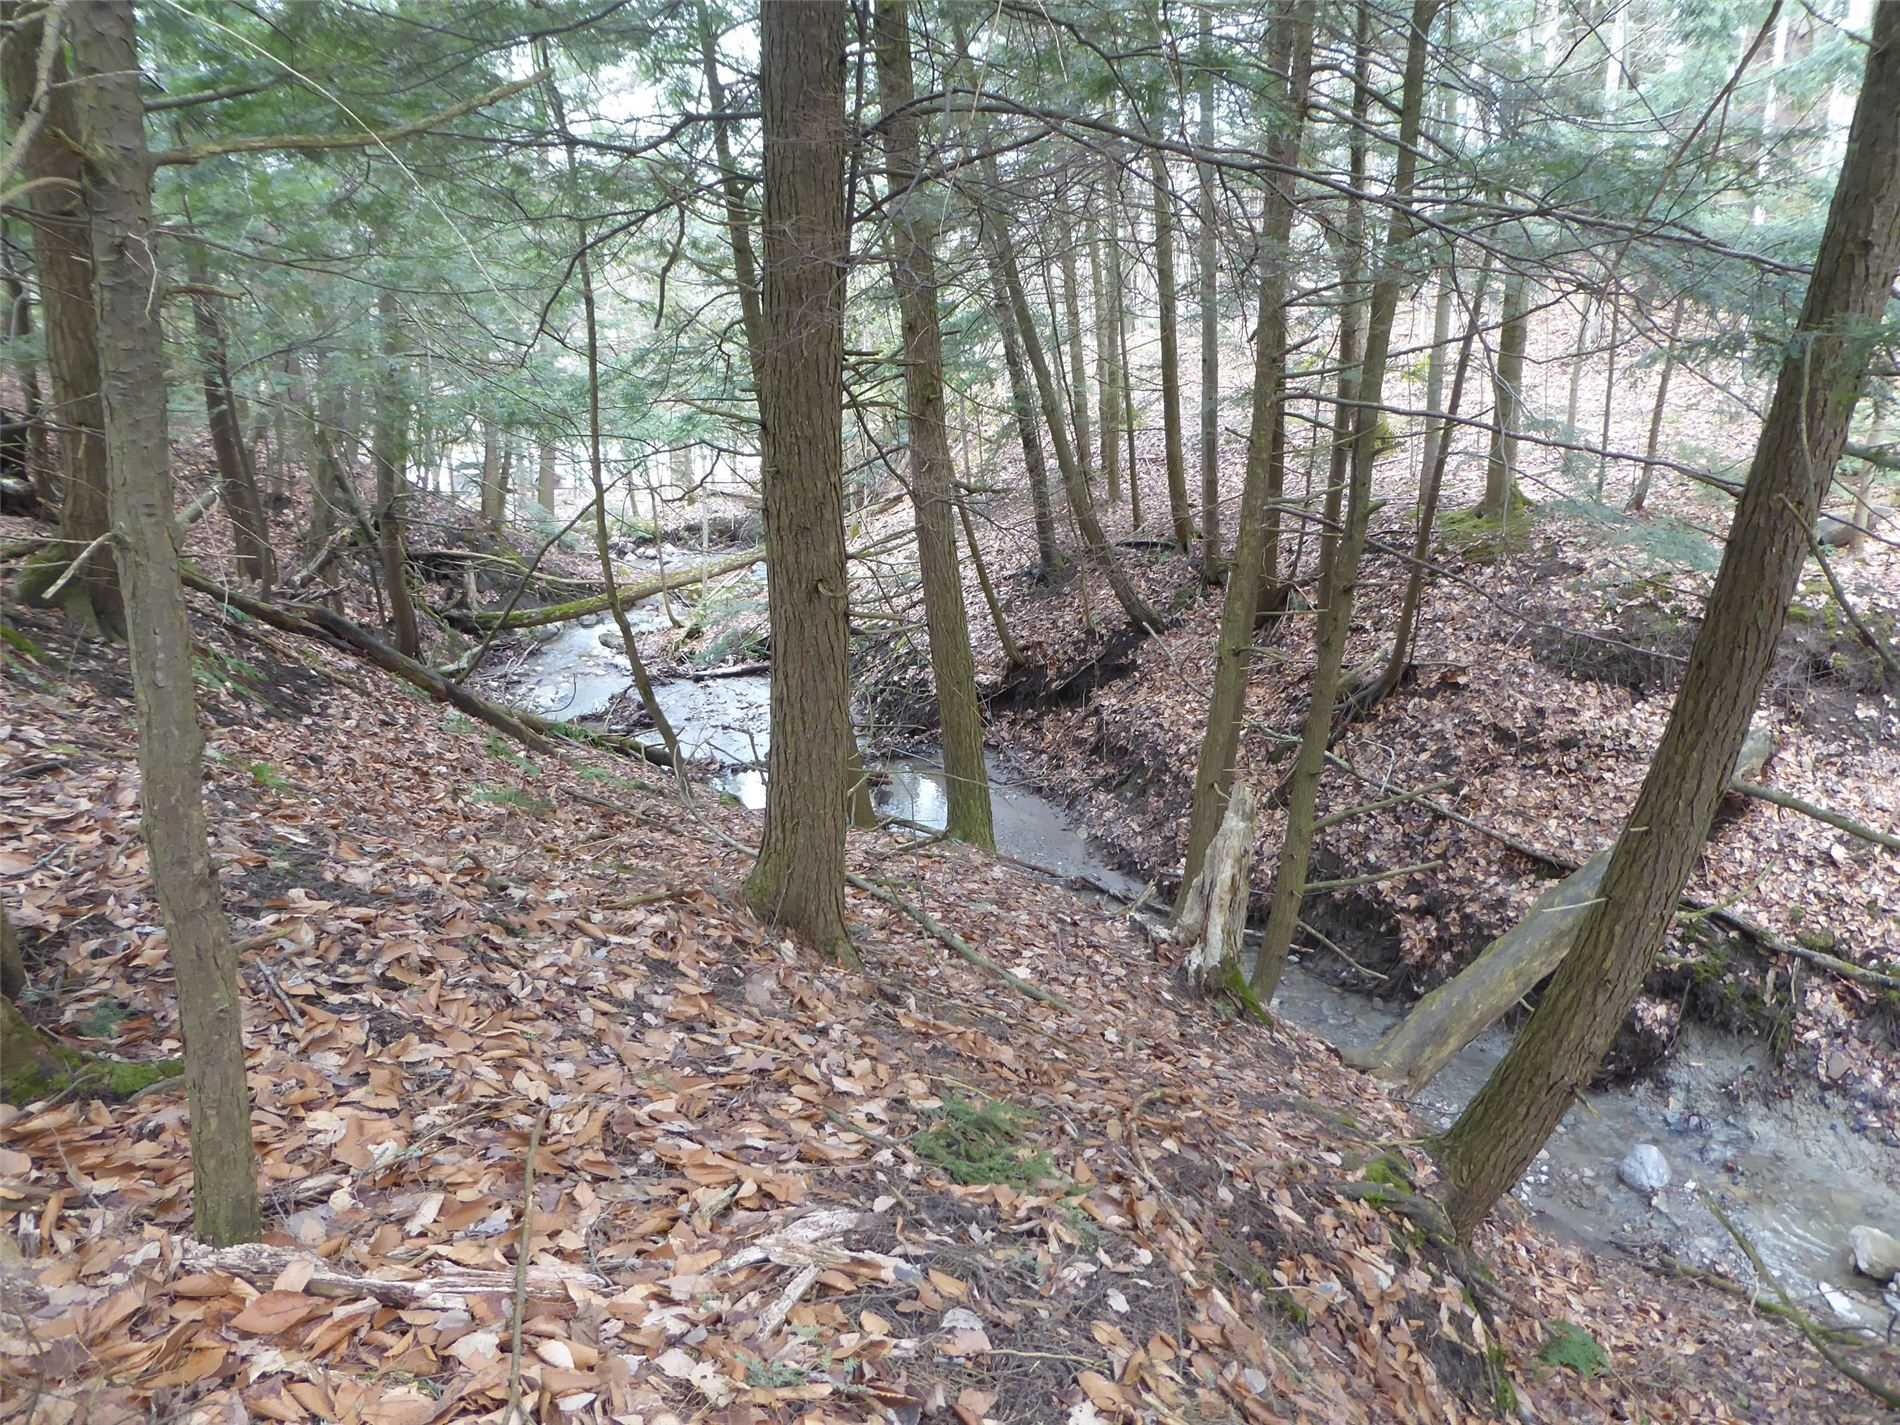 Absolutely Stunning Property With A Building Envelope On Top Of The Hillside For Views Of A Mature Mixed Forest And Georgian Bay. Magnificent Sunrises And Breathtaking Sunsets Over Georgian Bay. This 2.844 Acre Residential Lot Features A Beautiful River With A Ravine And Waterfall. Pictures Cannot Express The Abundance Of Nature, Steep Slope, And Development Opportunity Nestled In The Trees. Building Envelope Presented West Of The Riverbank On A Hilltop.